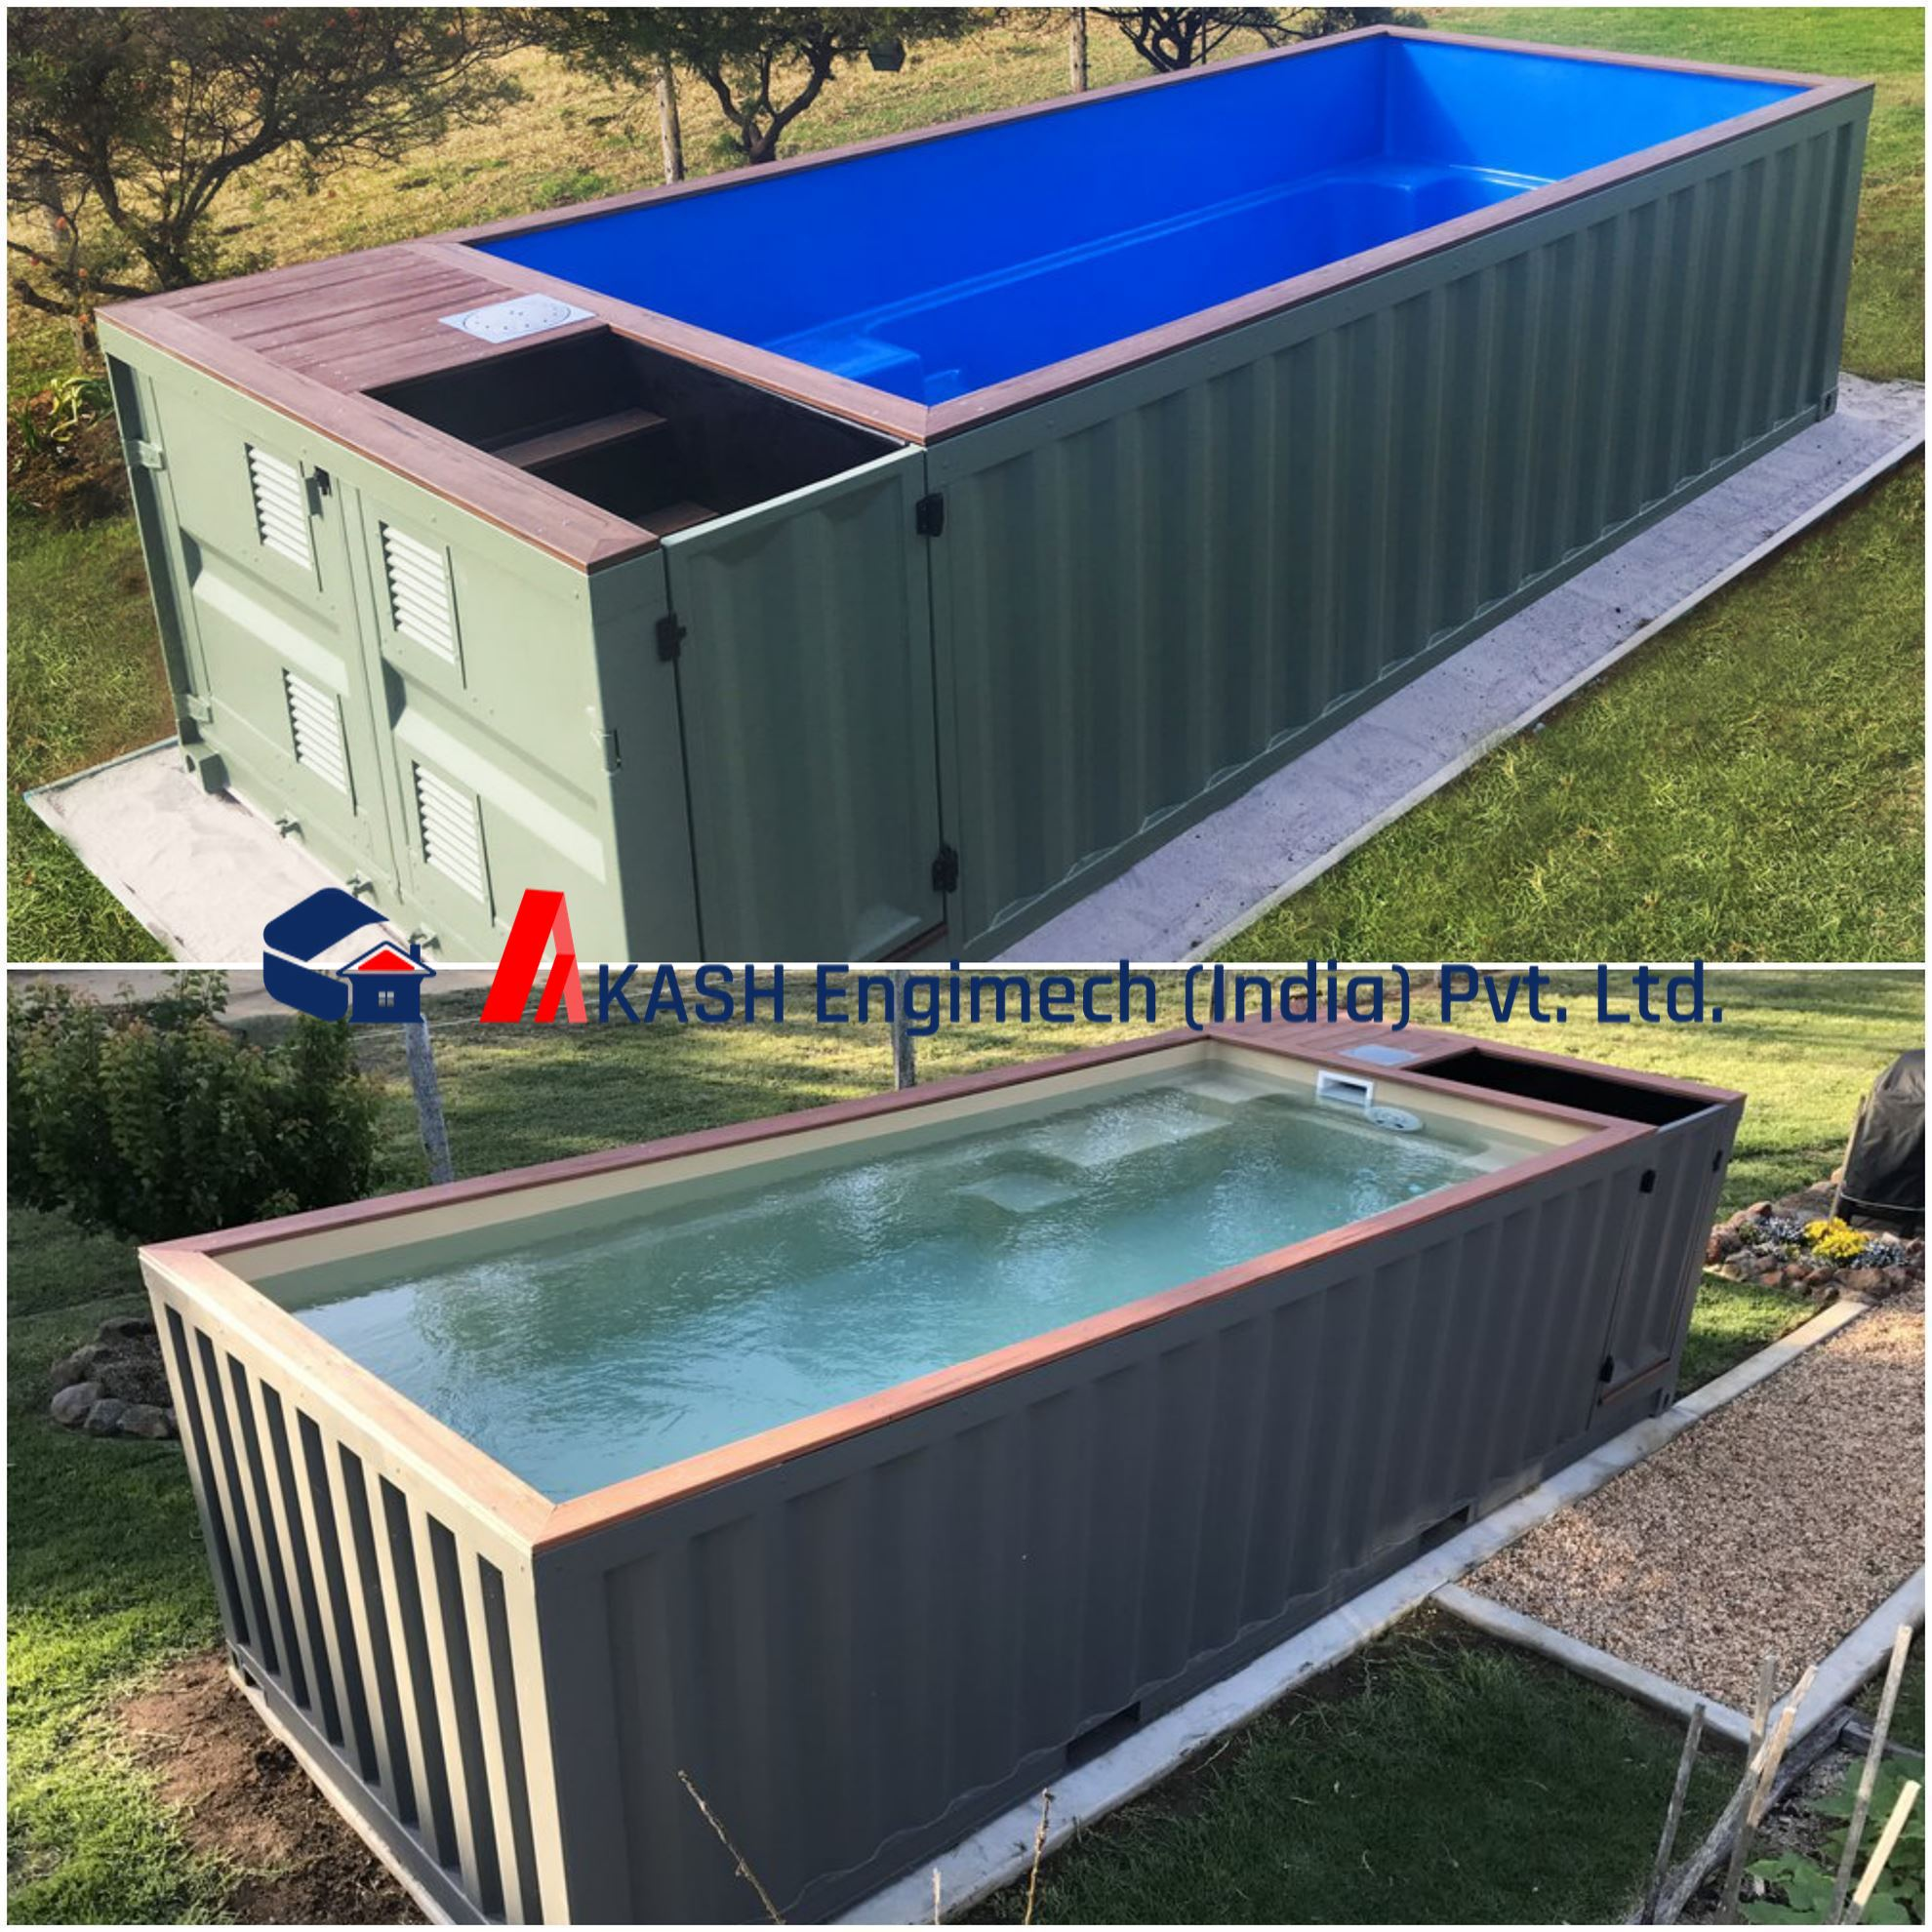 Akash Engimech India Pvt Ltd 20 Swimming Pool Container